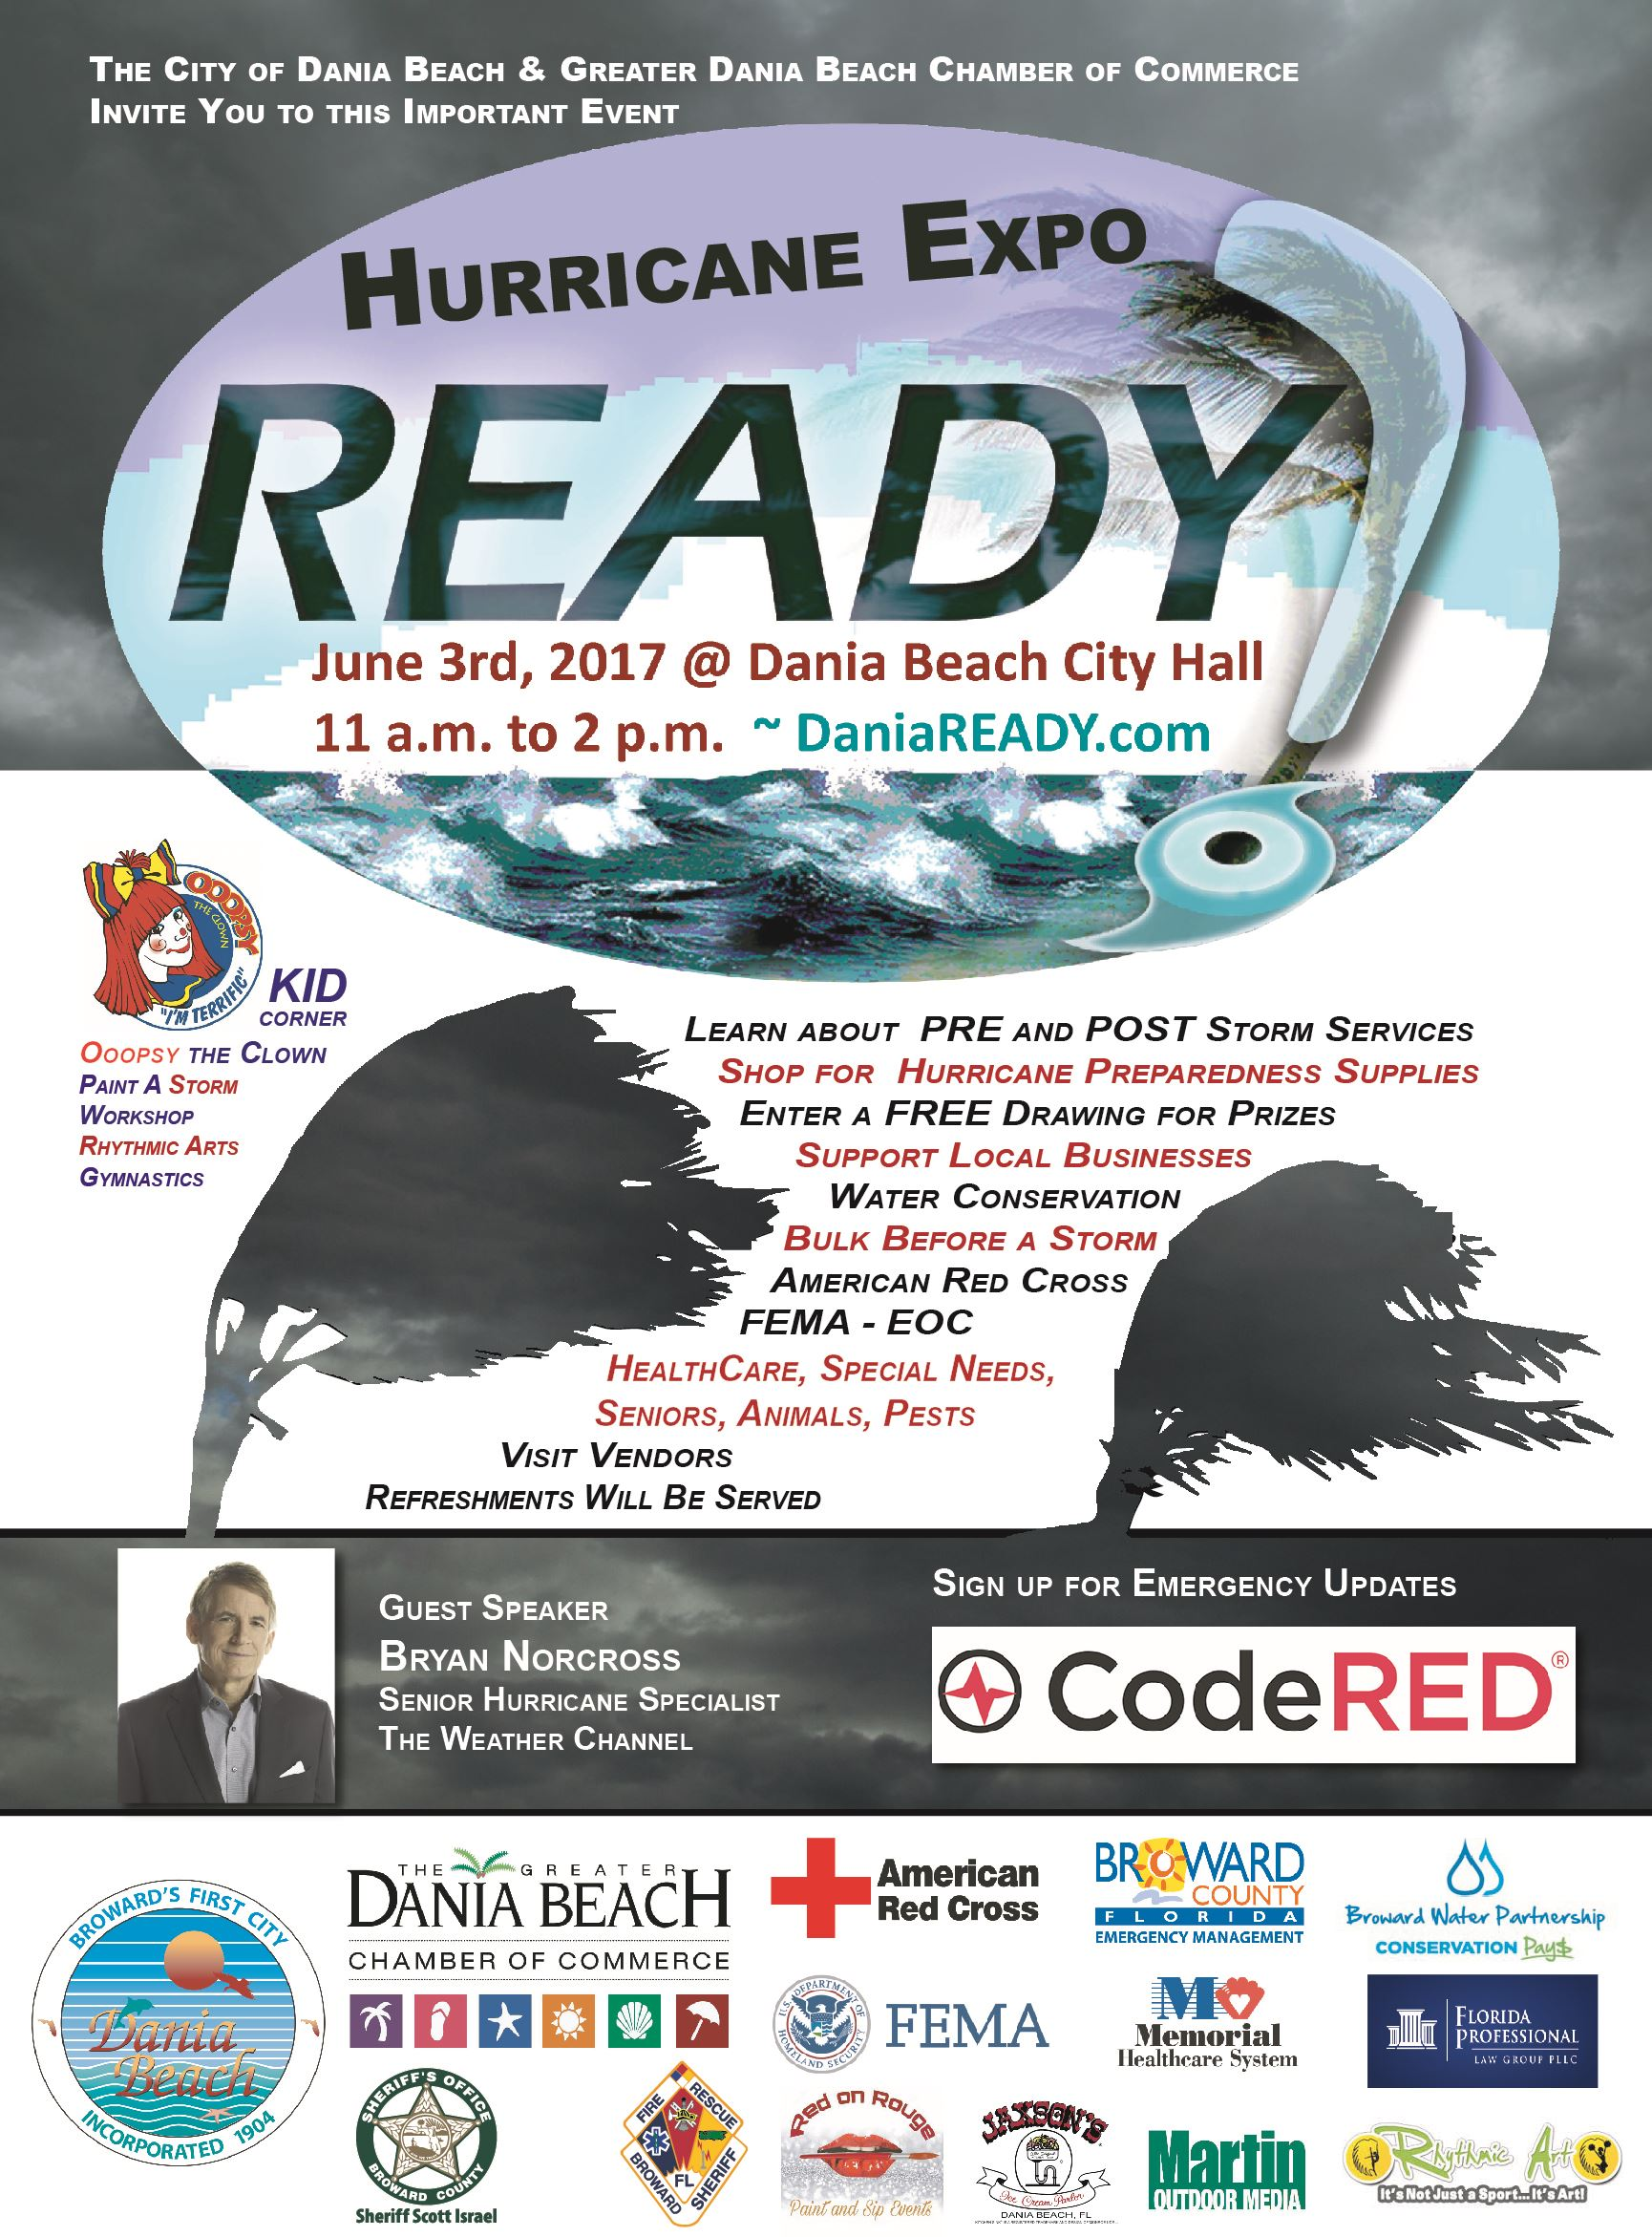 Hurricane Expo DaniaReady Codered Emergency Notification Poster